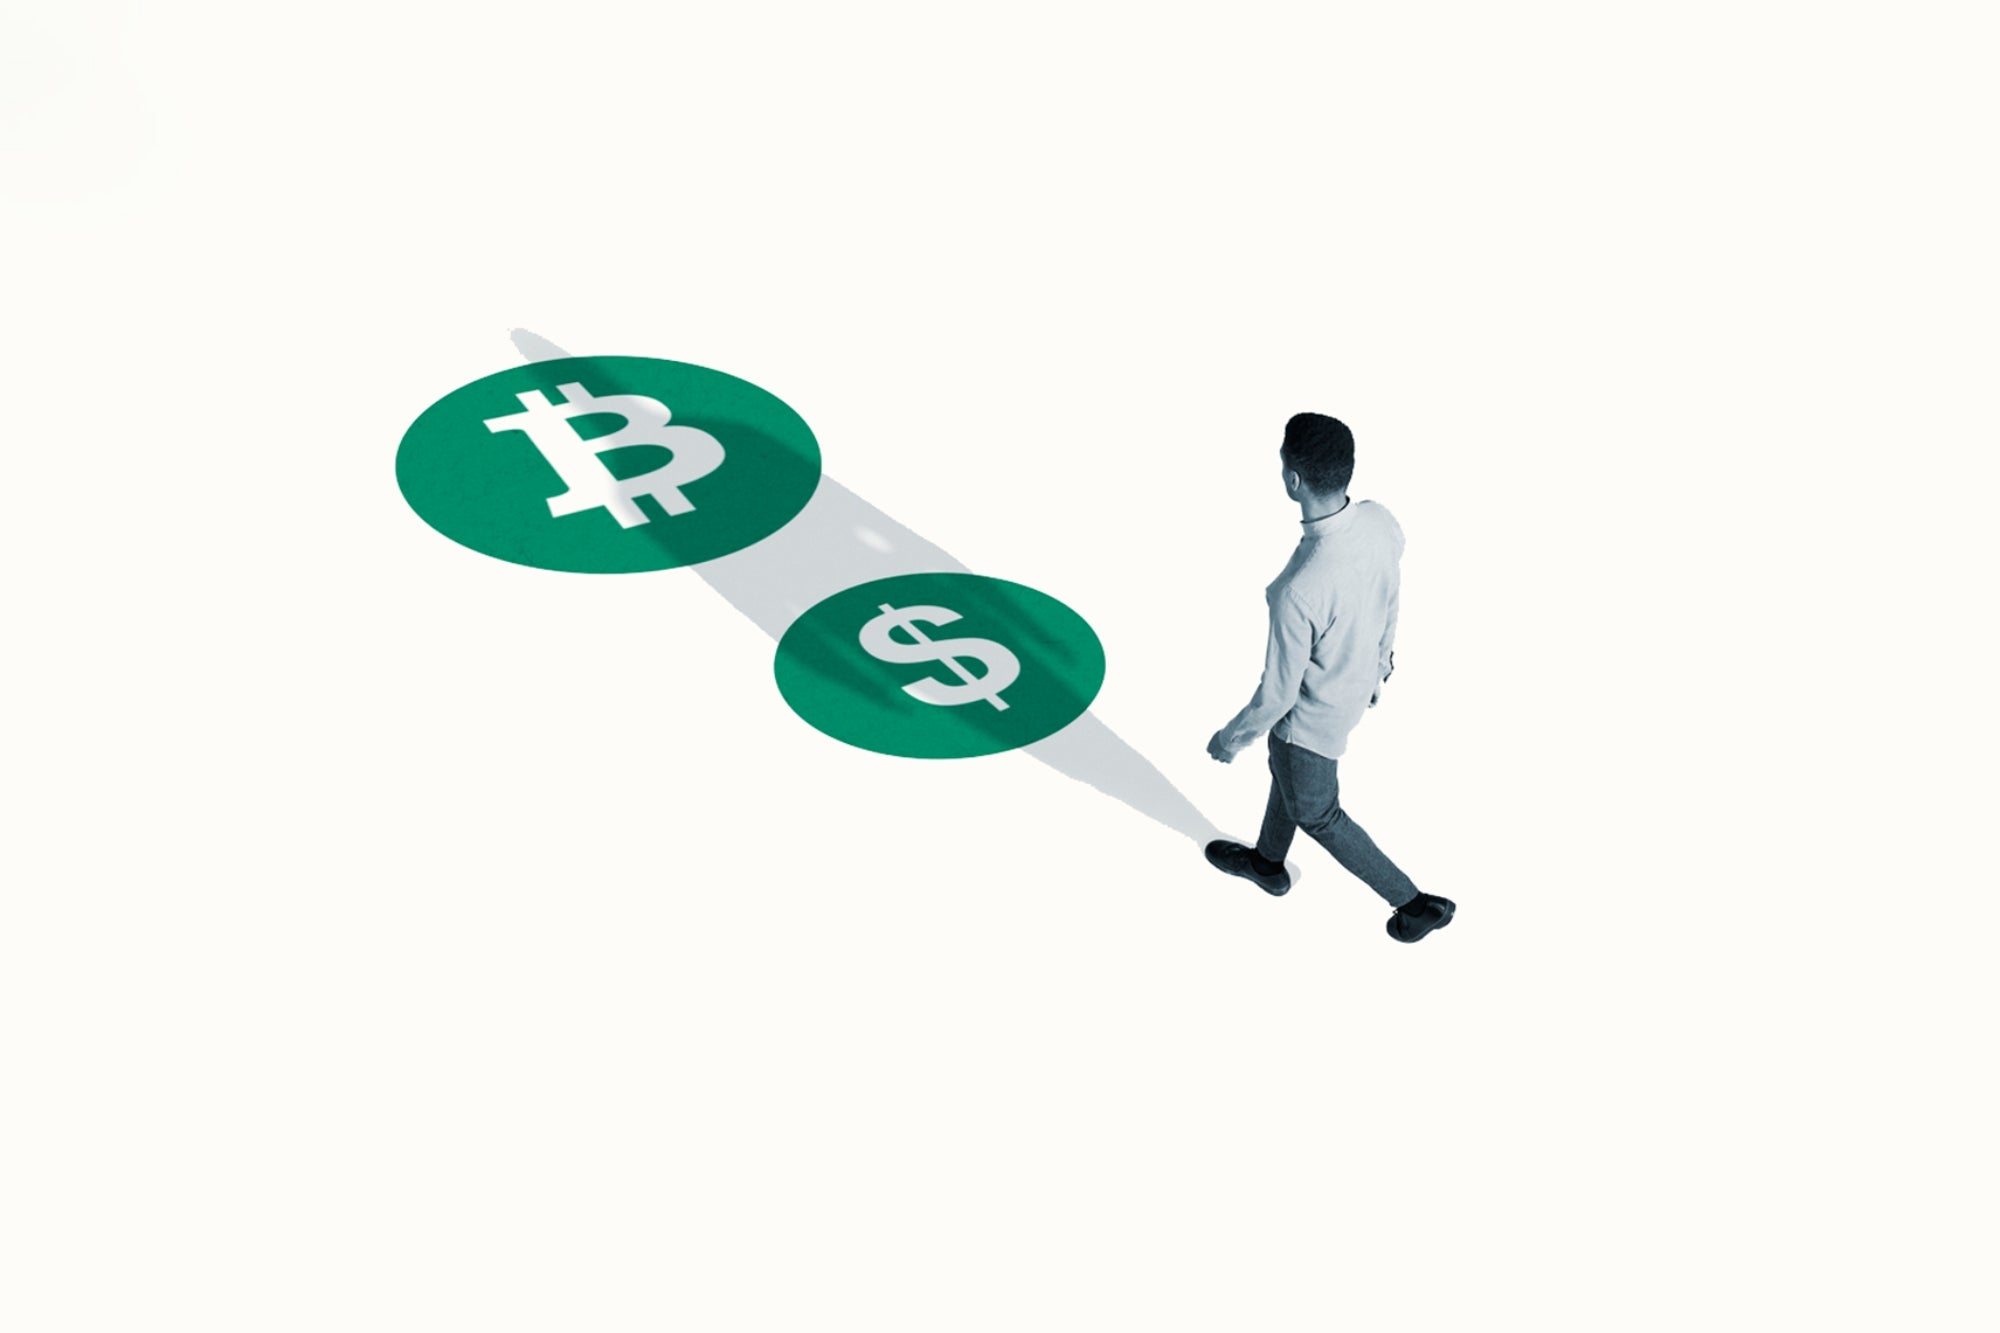 Equity Fundraising Solutions: Traditional VCs or Cryptocurrencies?